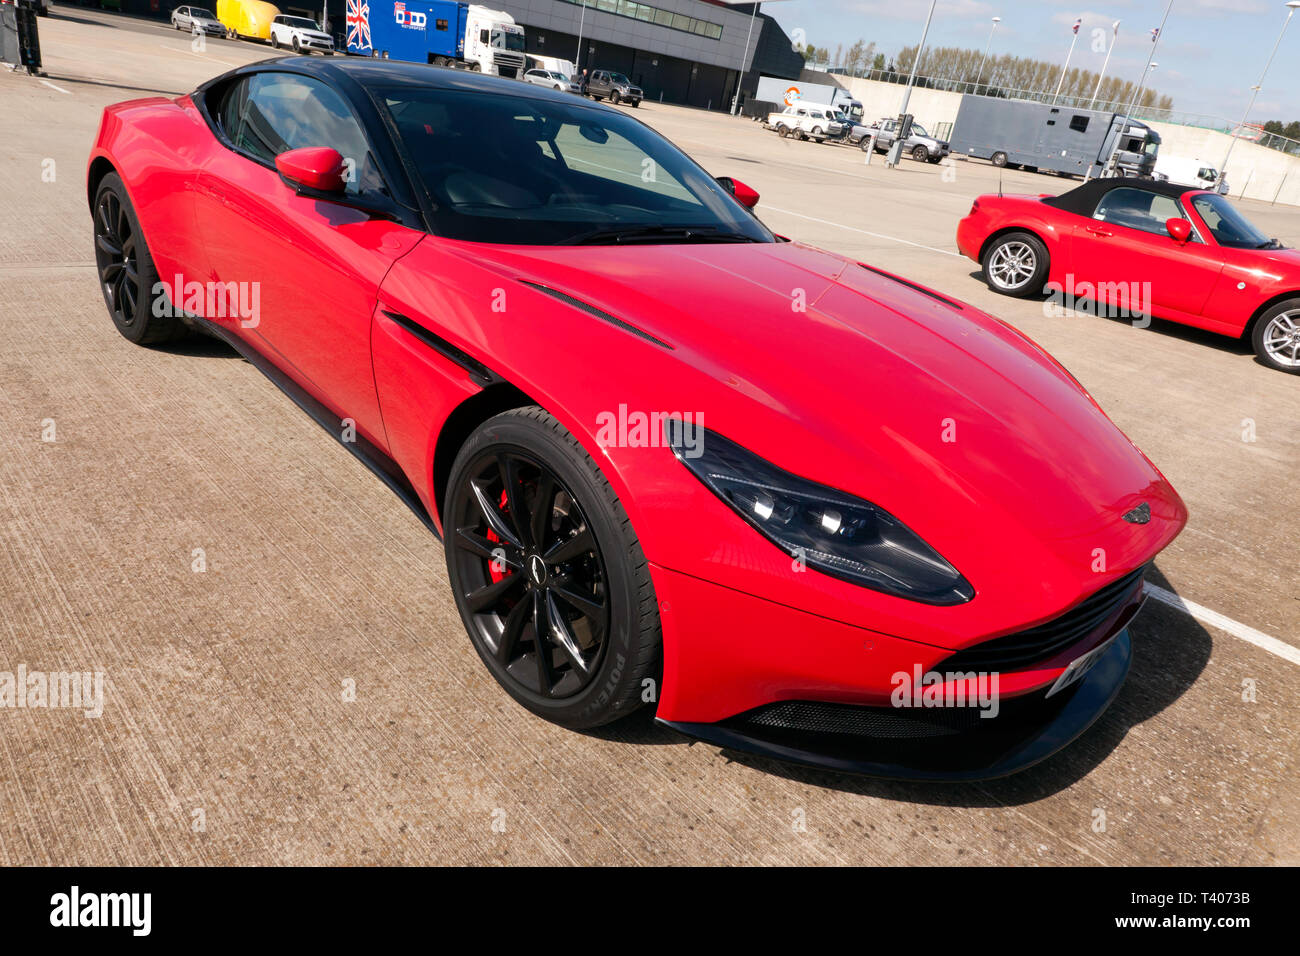 An Red Aston Martin Db11 Parked In The International Paddock During The 2019 Silverstone Classic Media Day Stock Photo Alamy